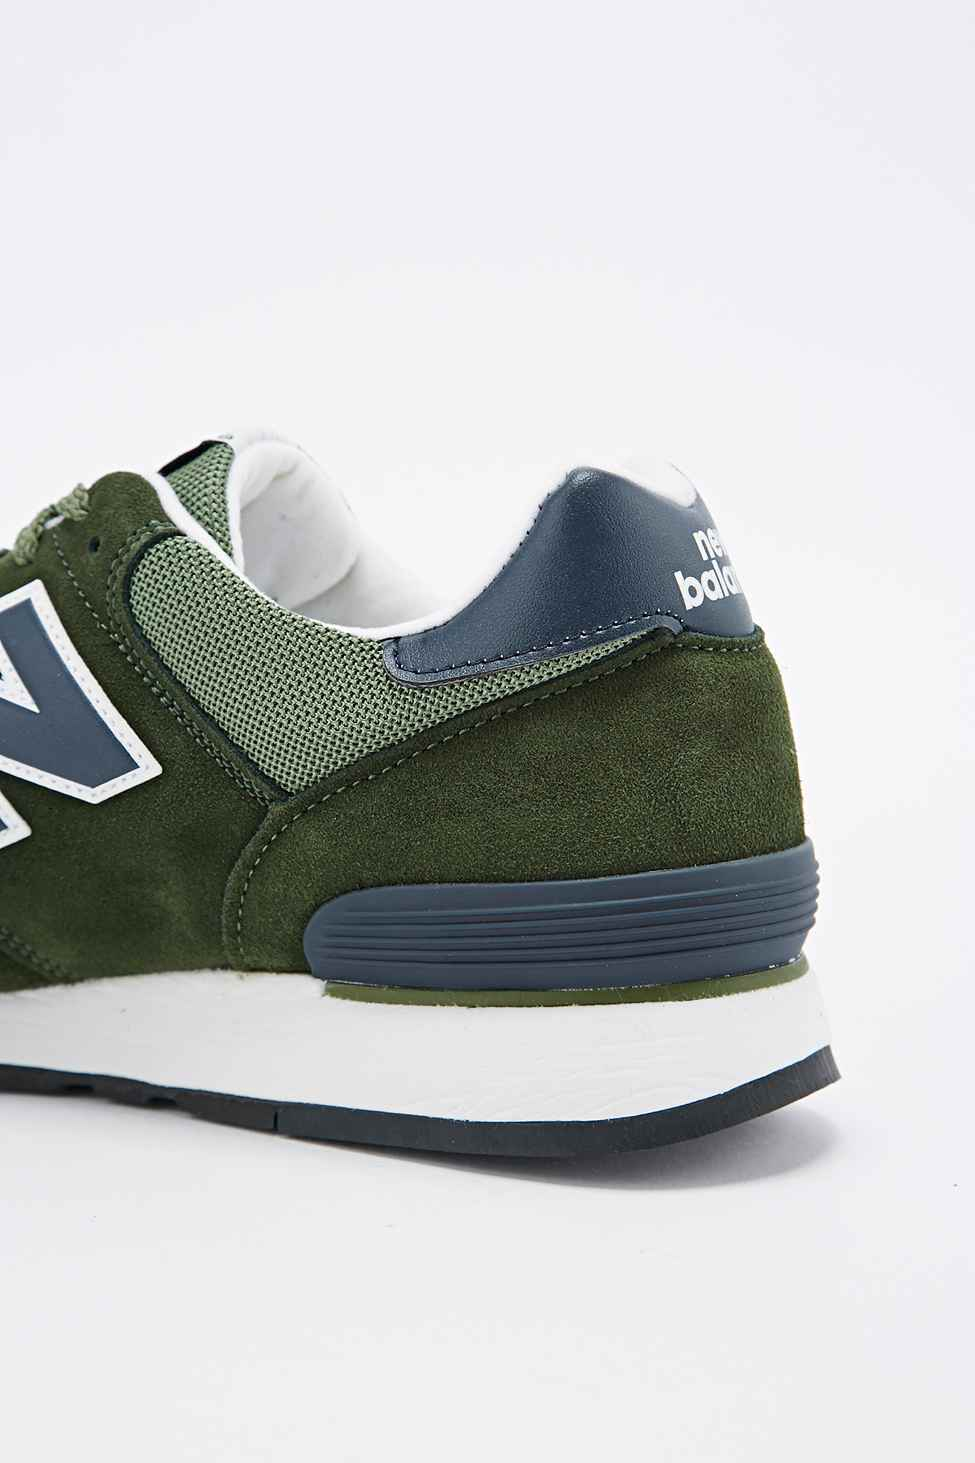 brand new 421e6 0622b New Balance 670 Made In Uk Camping Trainers In Green in ...